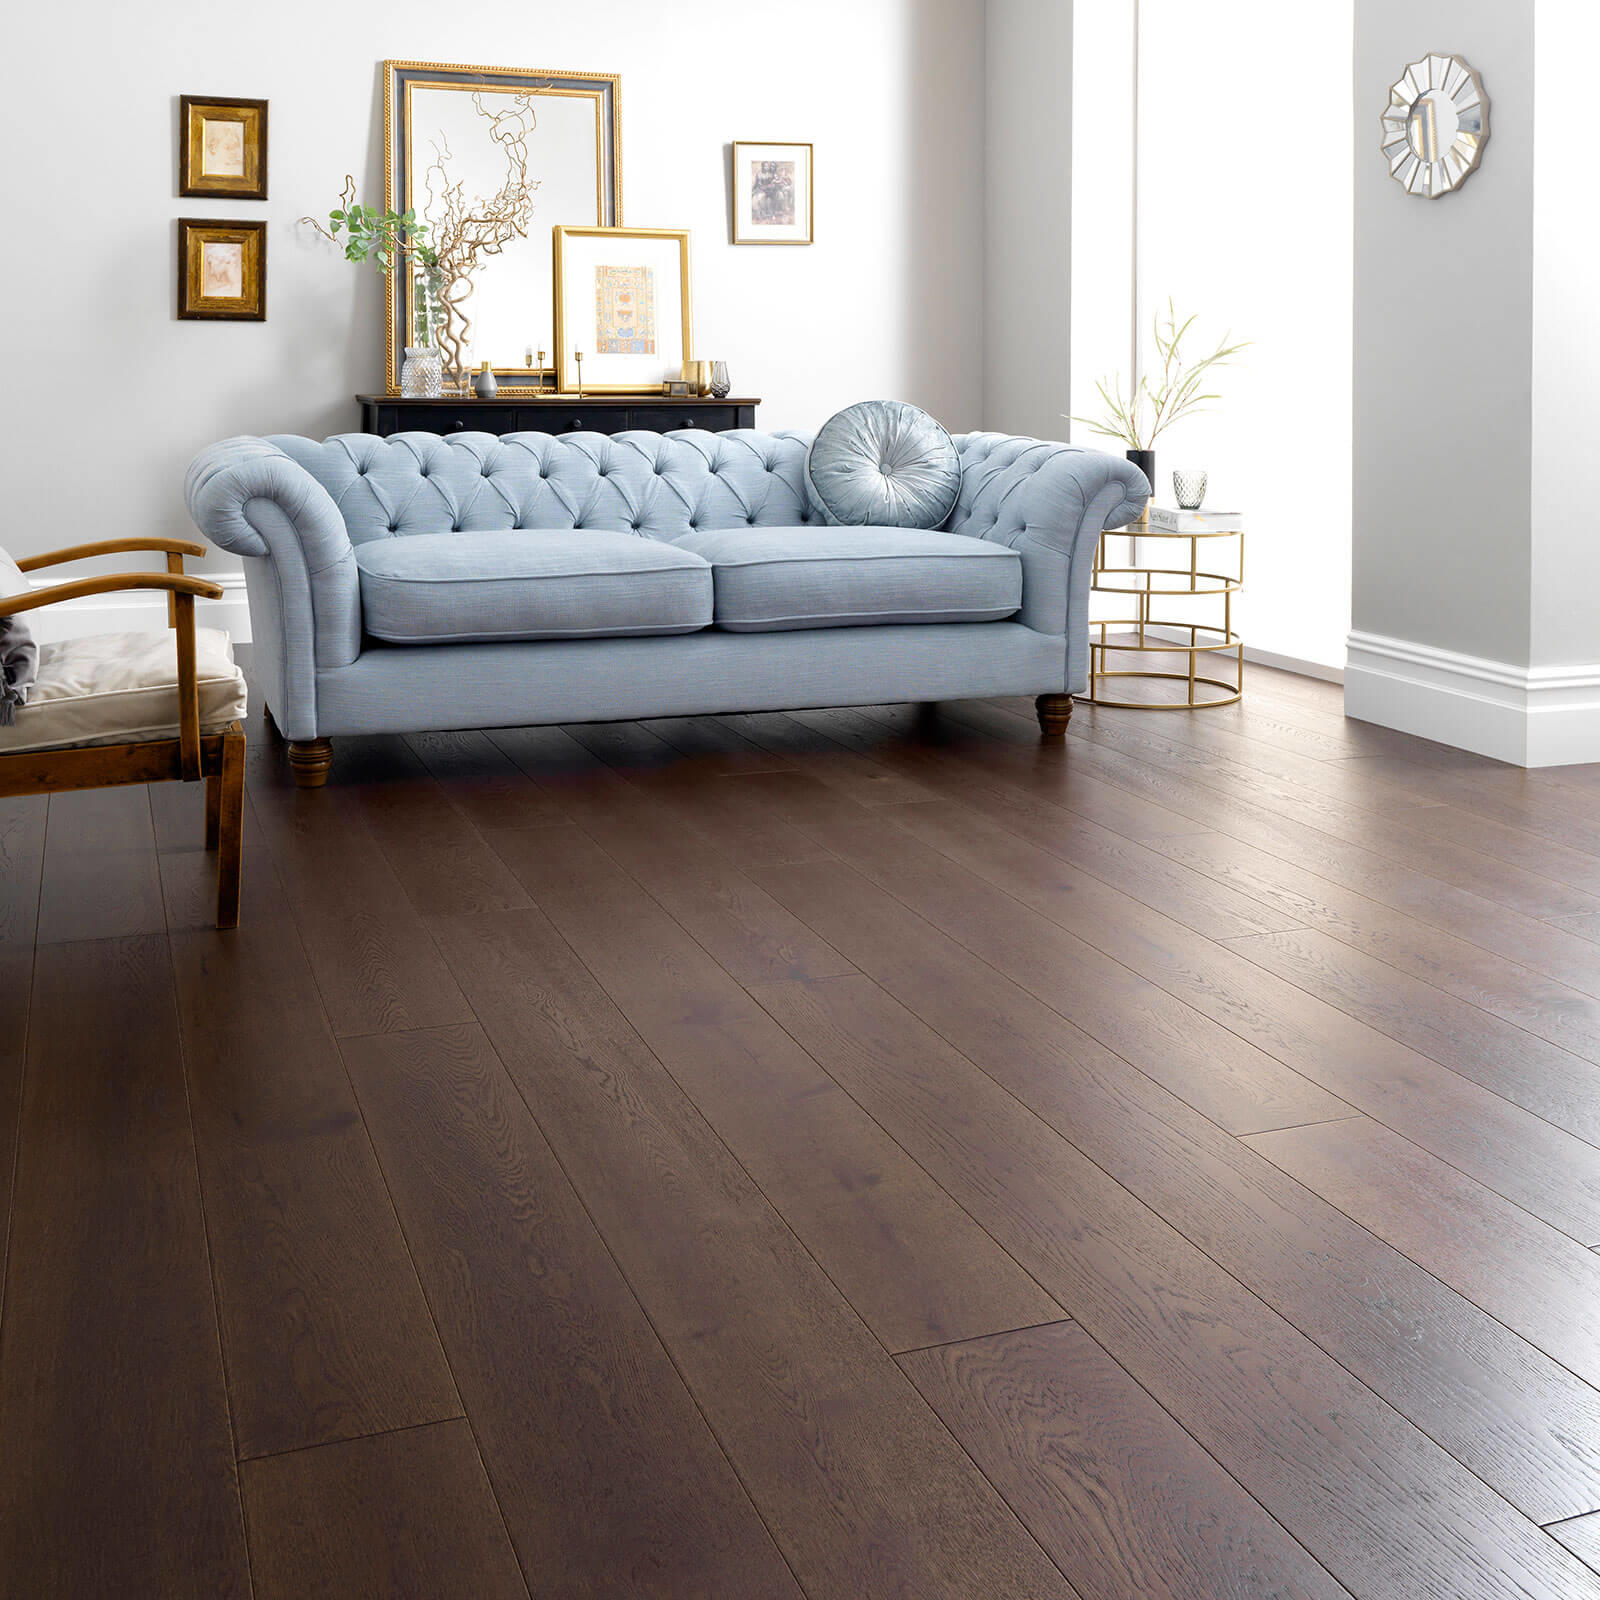 Woodpecker Harlech Chocolate Oak Brushed & Matt Lacquered Engineered Wood Flooring 190mm 35-HCW-001